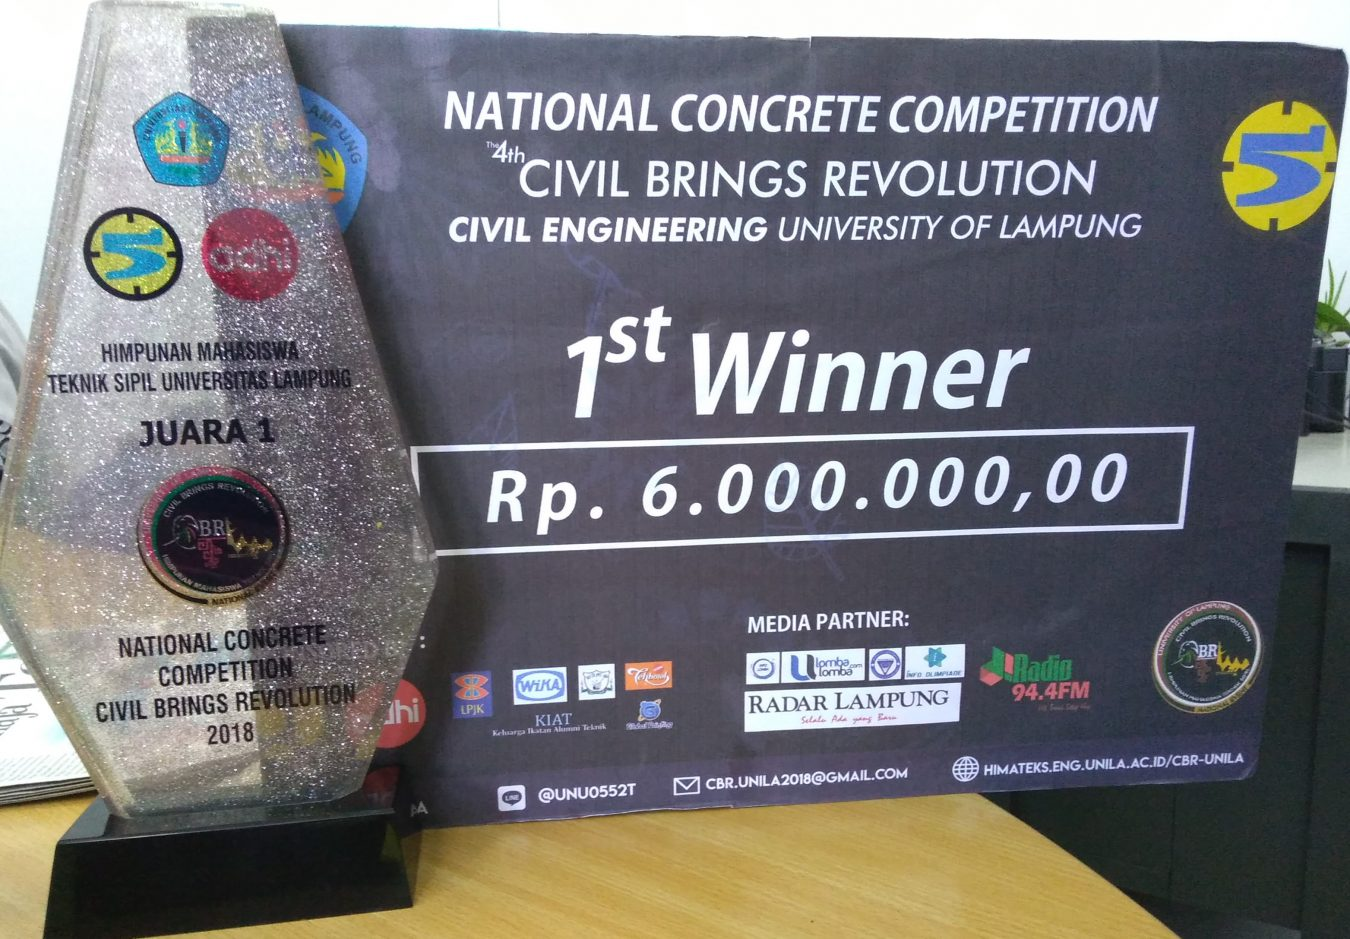 Juara 1 National Concrete Competition Civil Brings Revolution 2018 dengan tema High Compressive Strength Concrete with Waste Materials